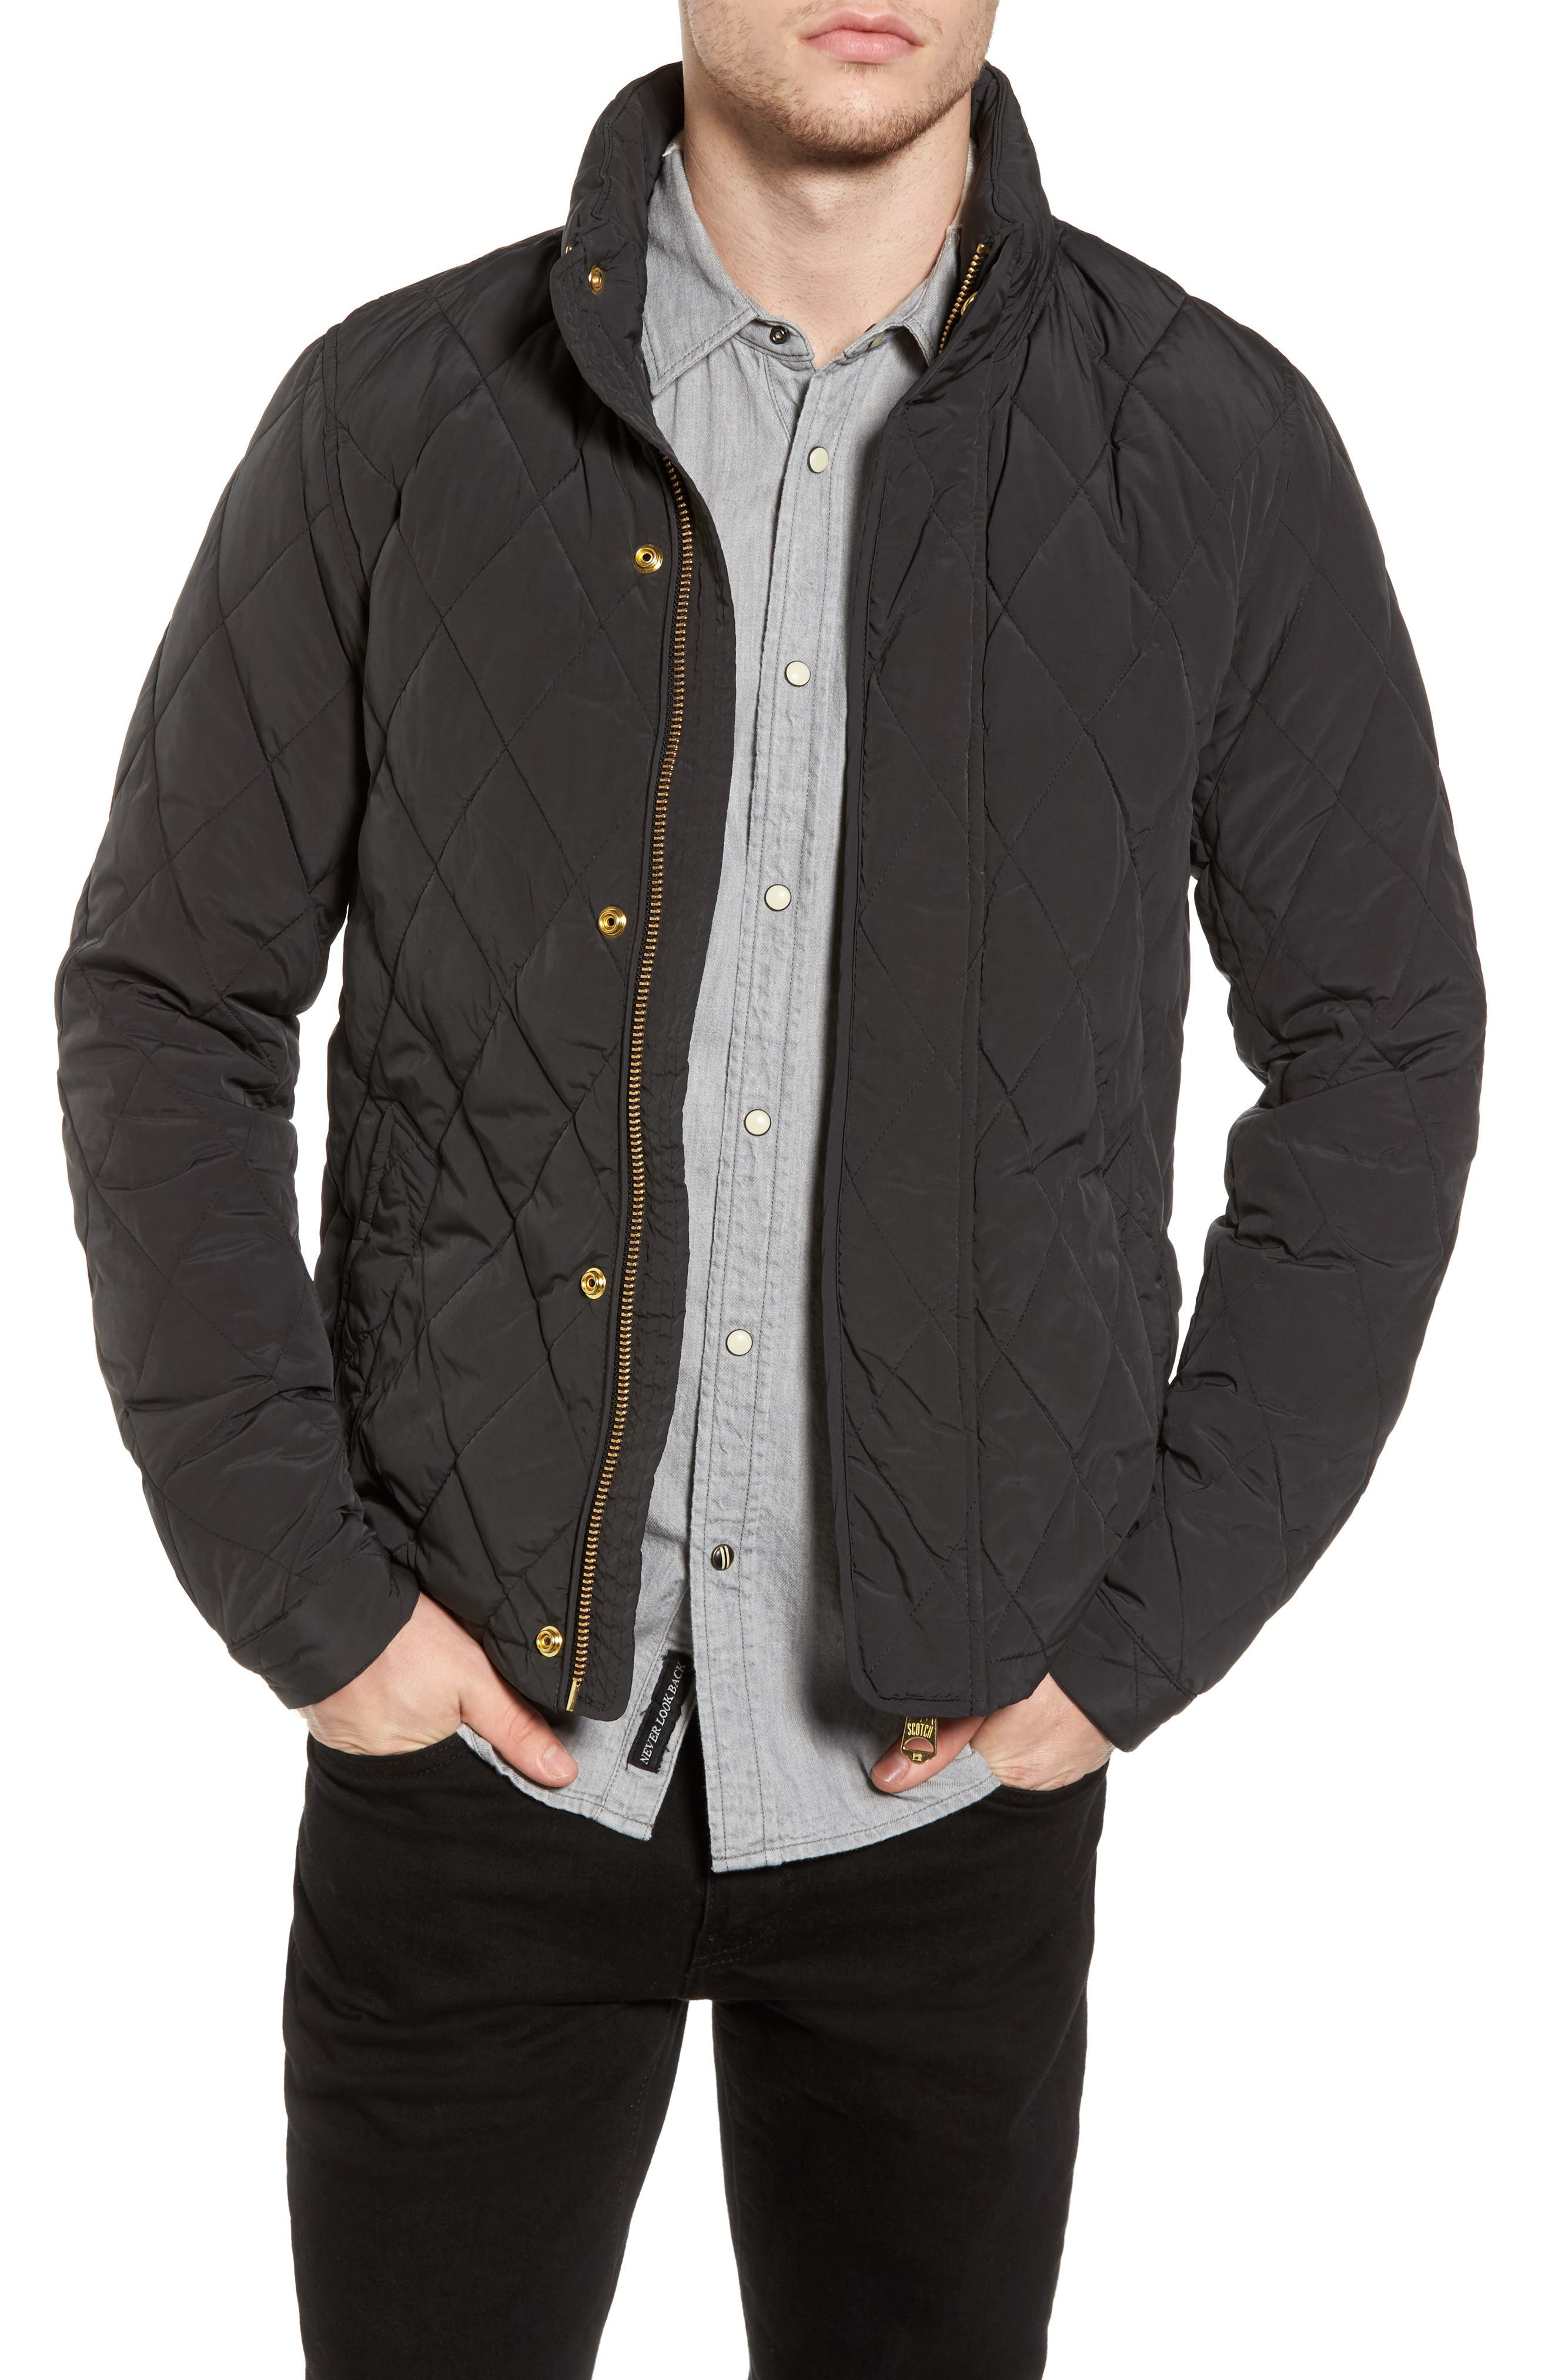 Alternate Image 1 Selected - Scotch & Soda Lightweight Quilted Jacket